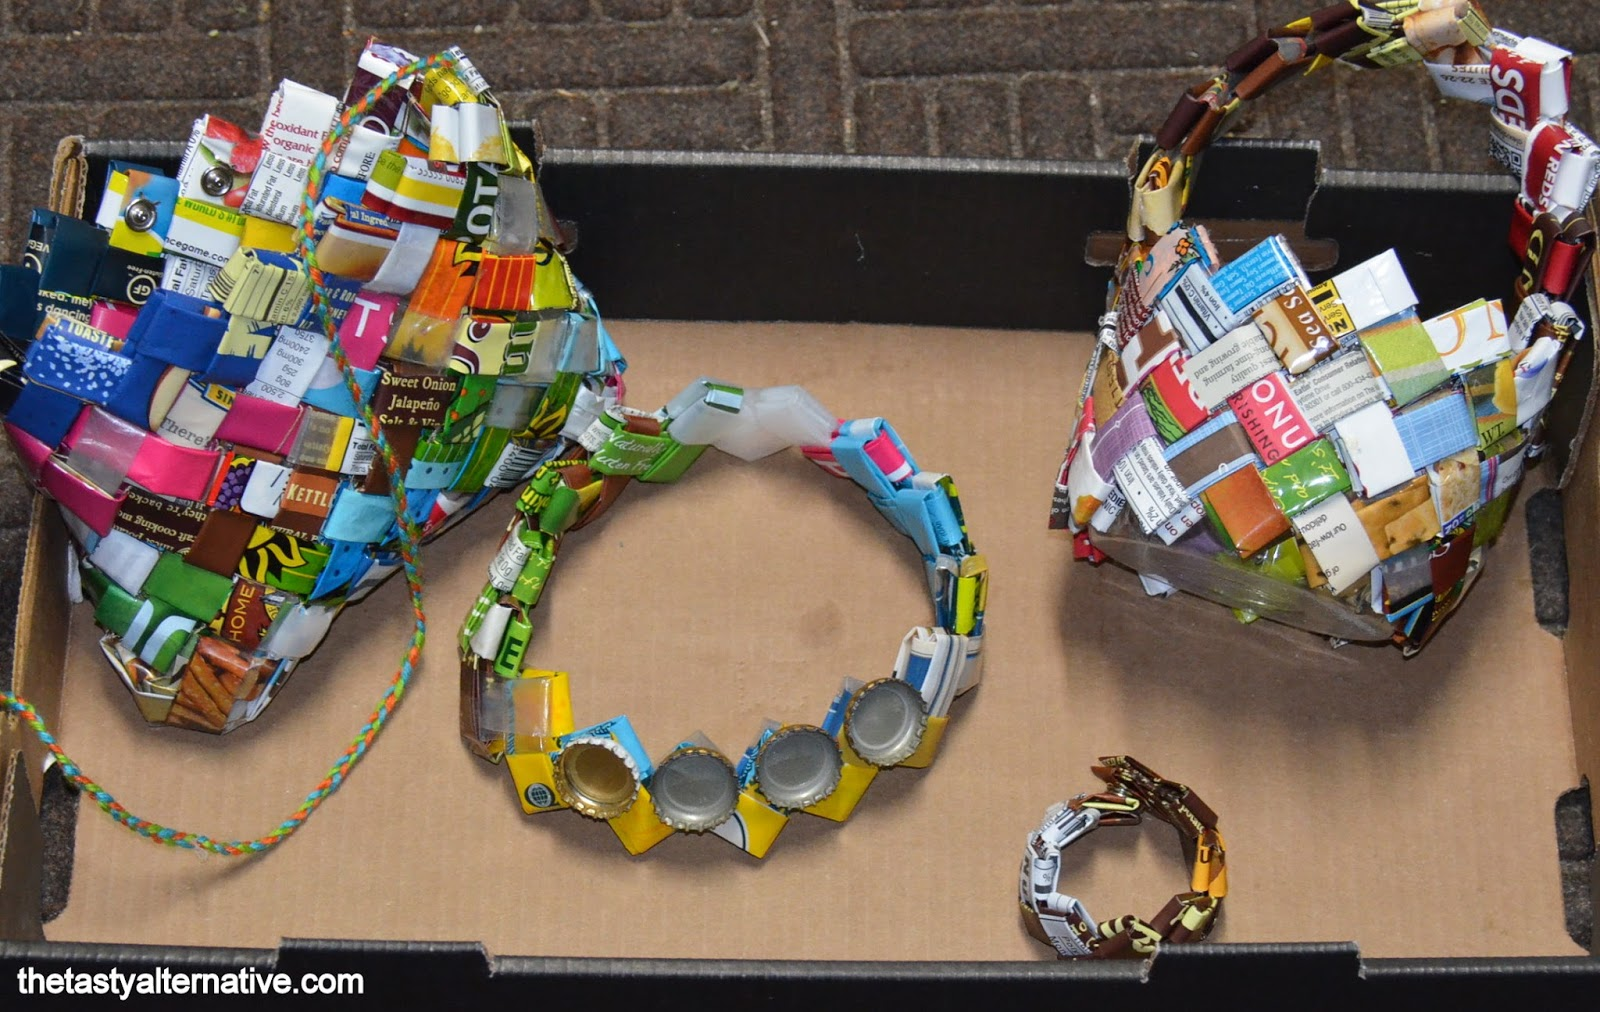 Waste material activity arts and crafts project ideas for Waste material craft